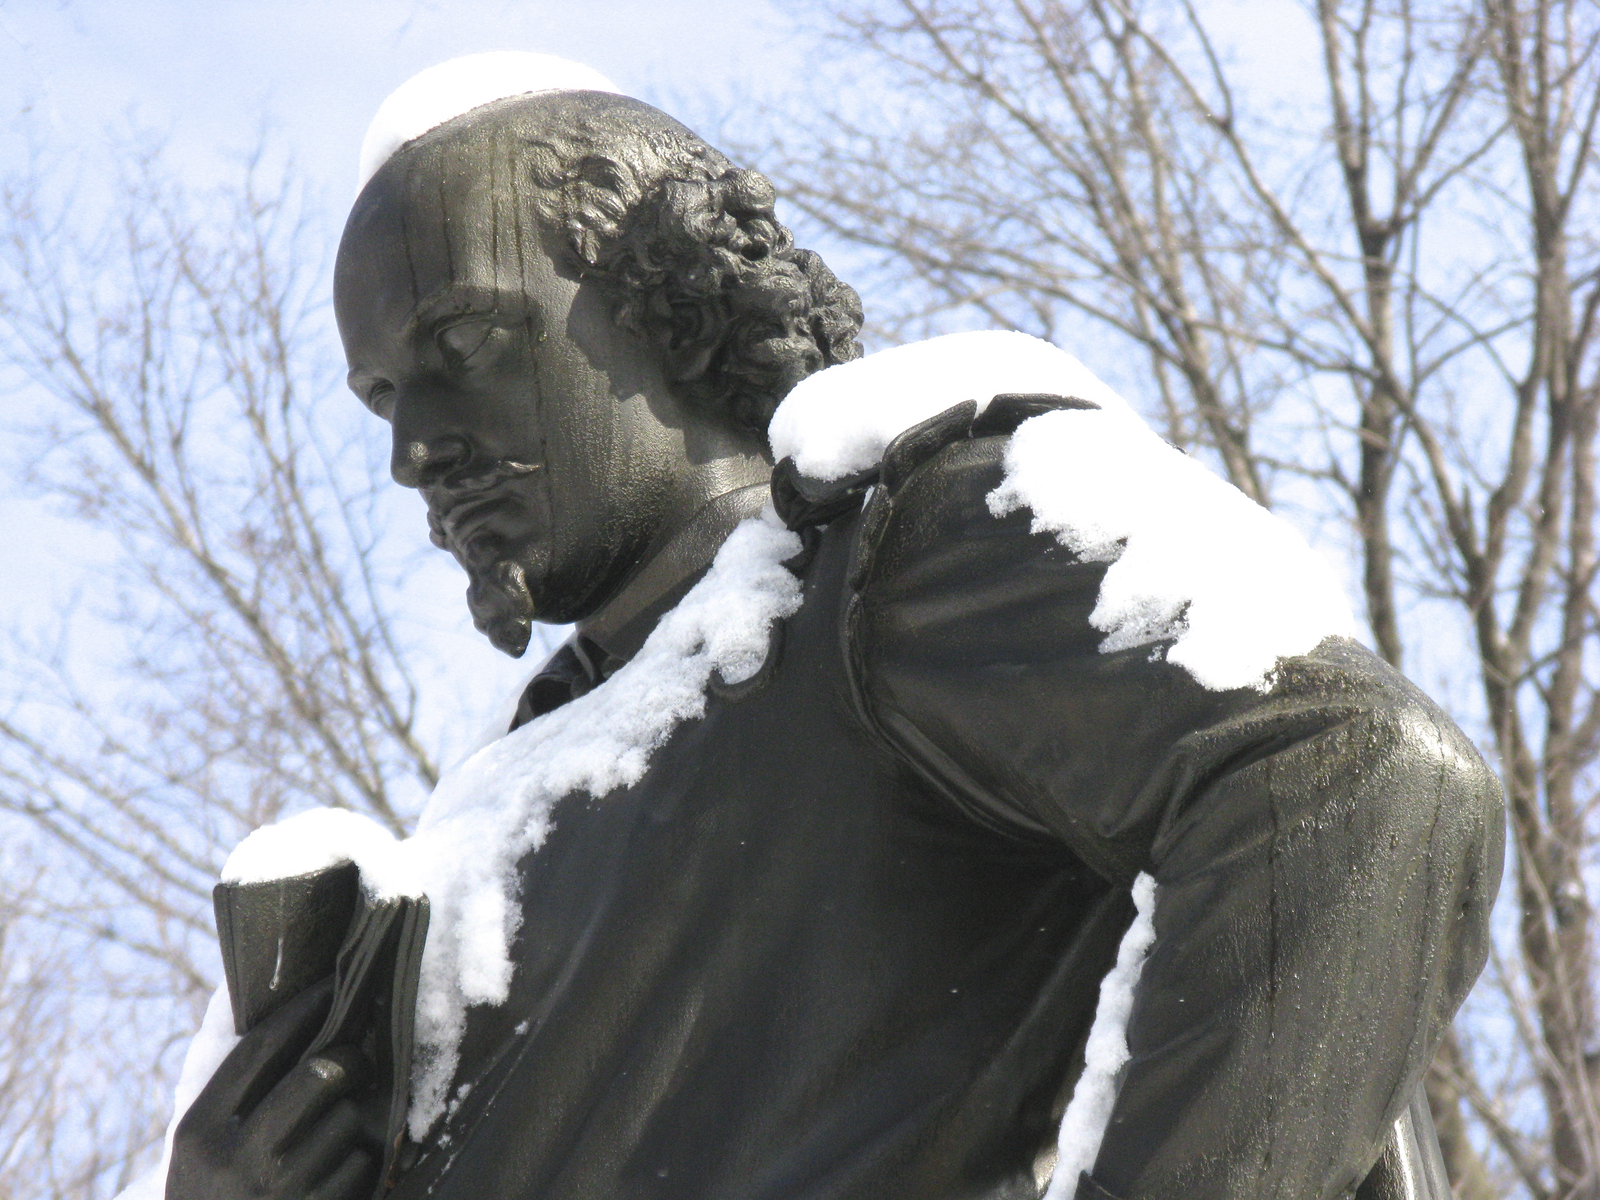 statue of william shakespeare in central park, nyc